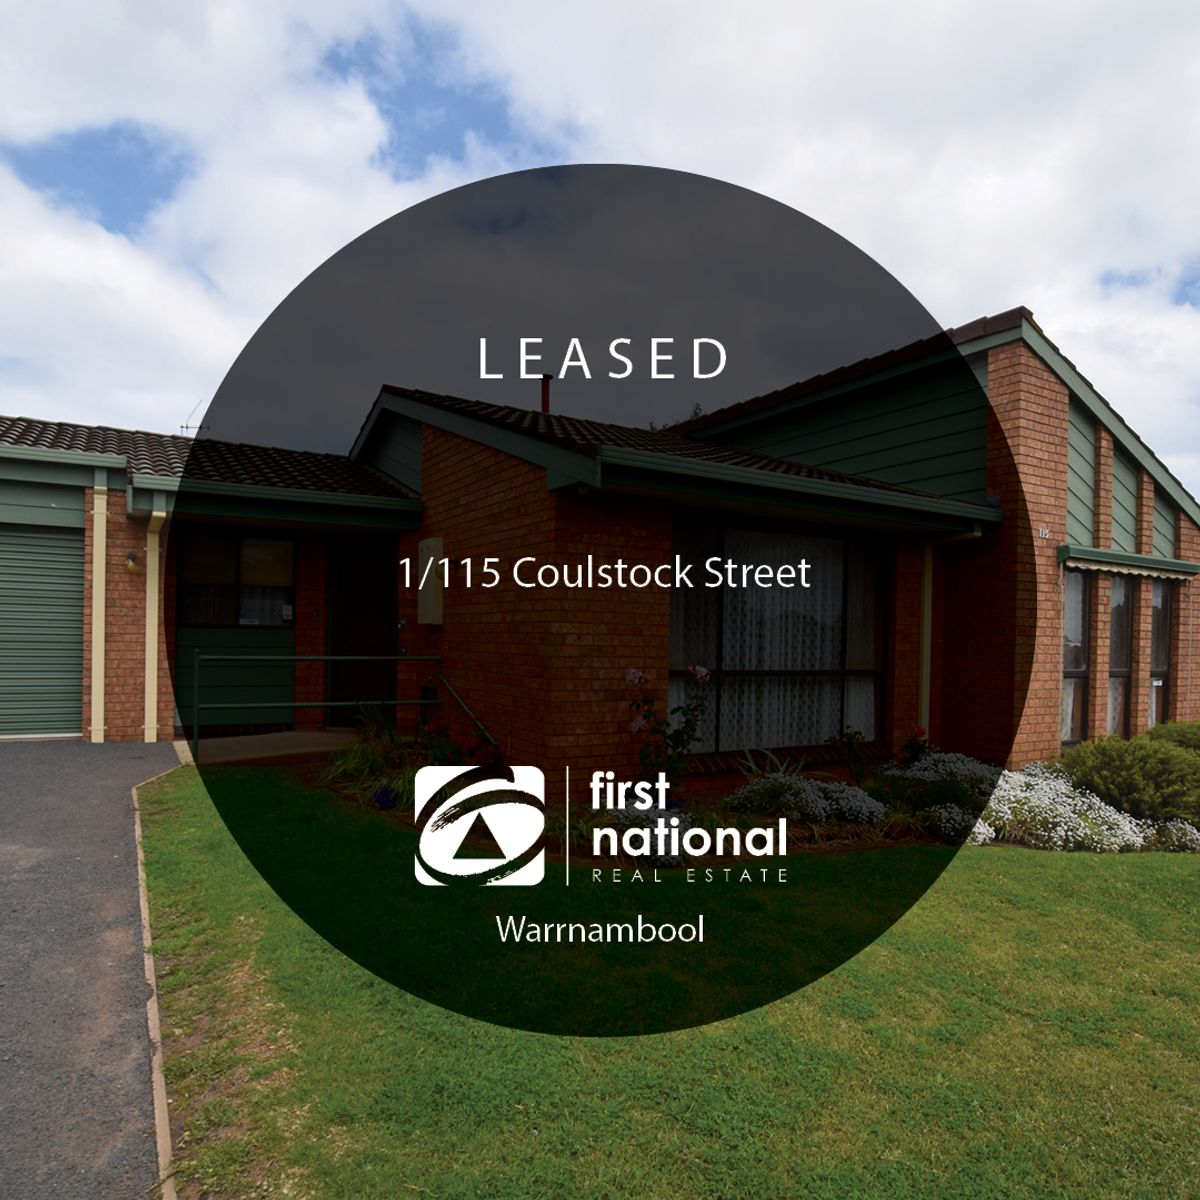 1/115 Coulstock Street, Warrnambool, VIC 3280